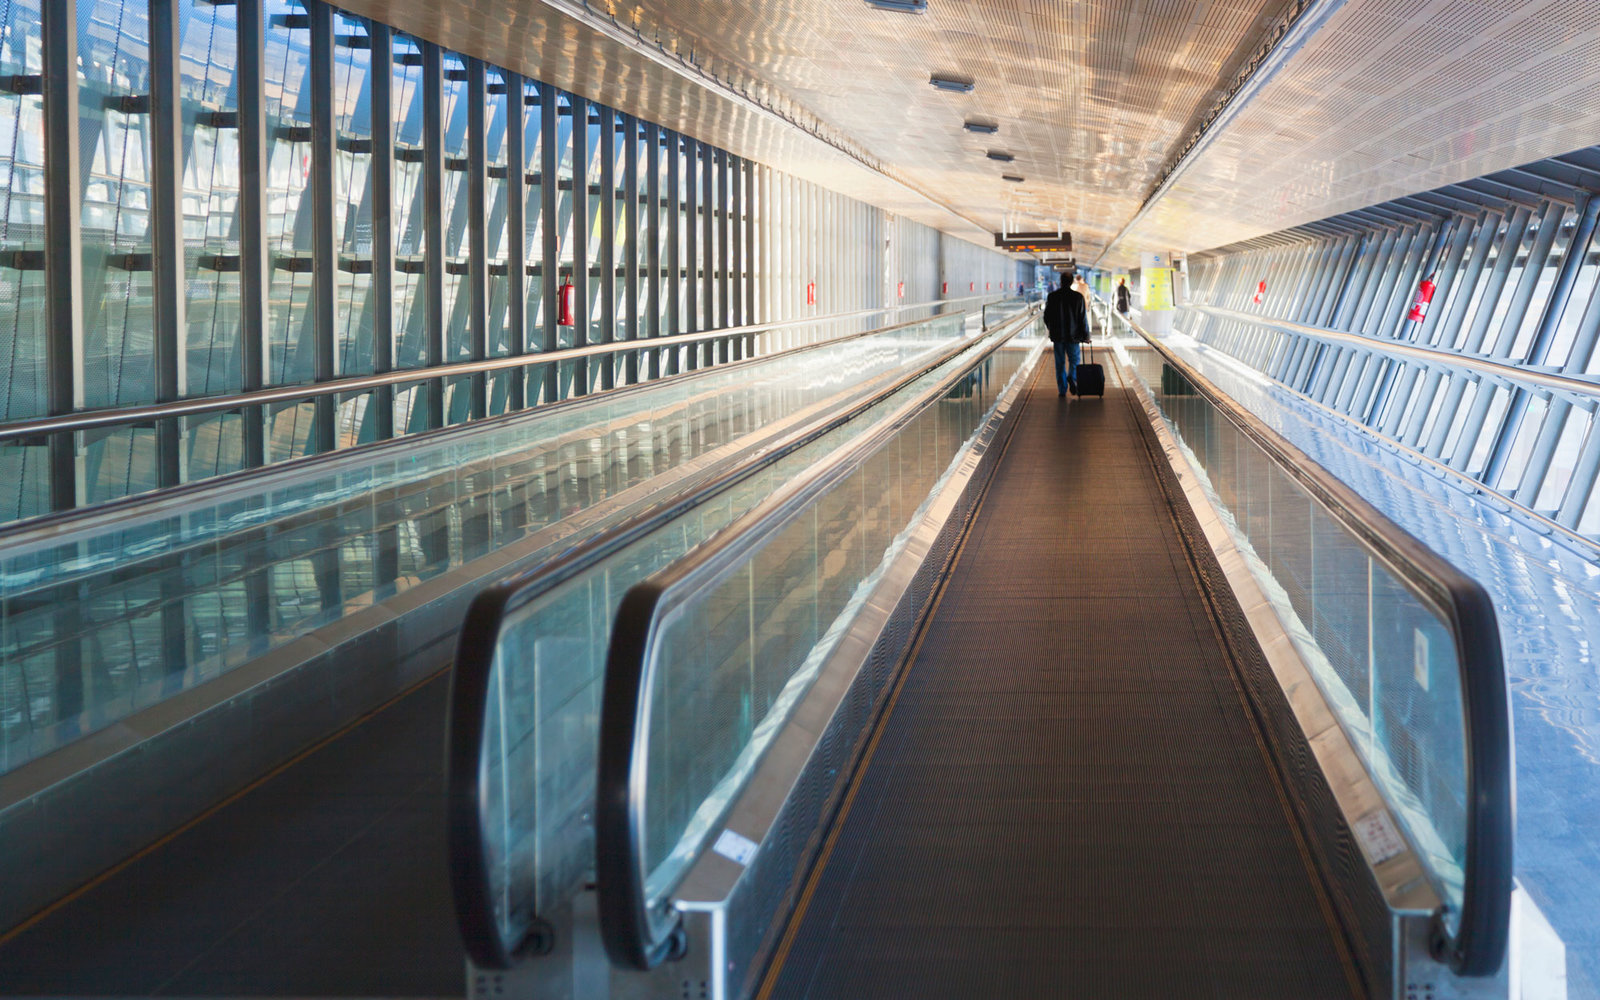 moving-walkway-SWM1115